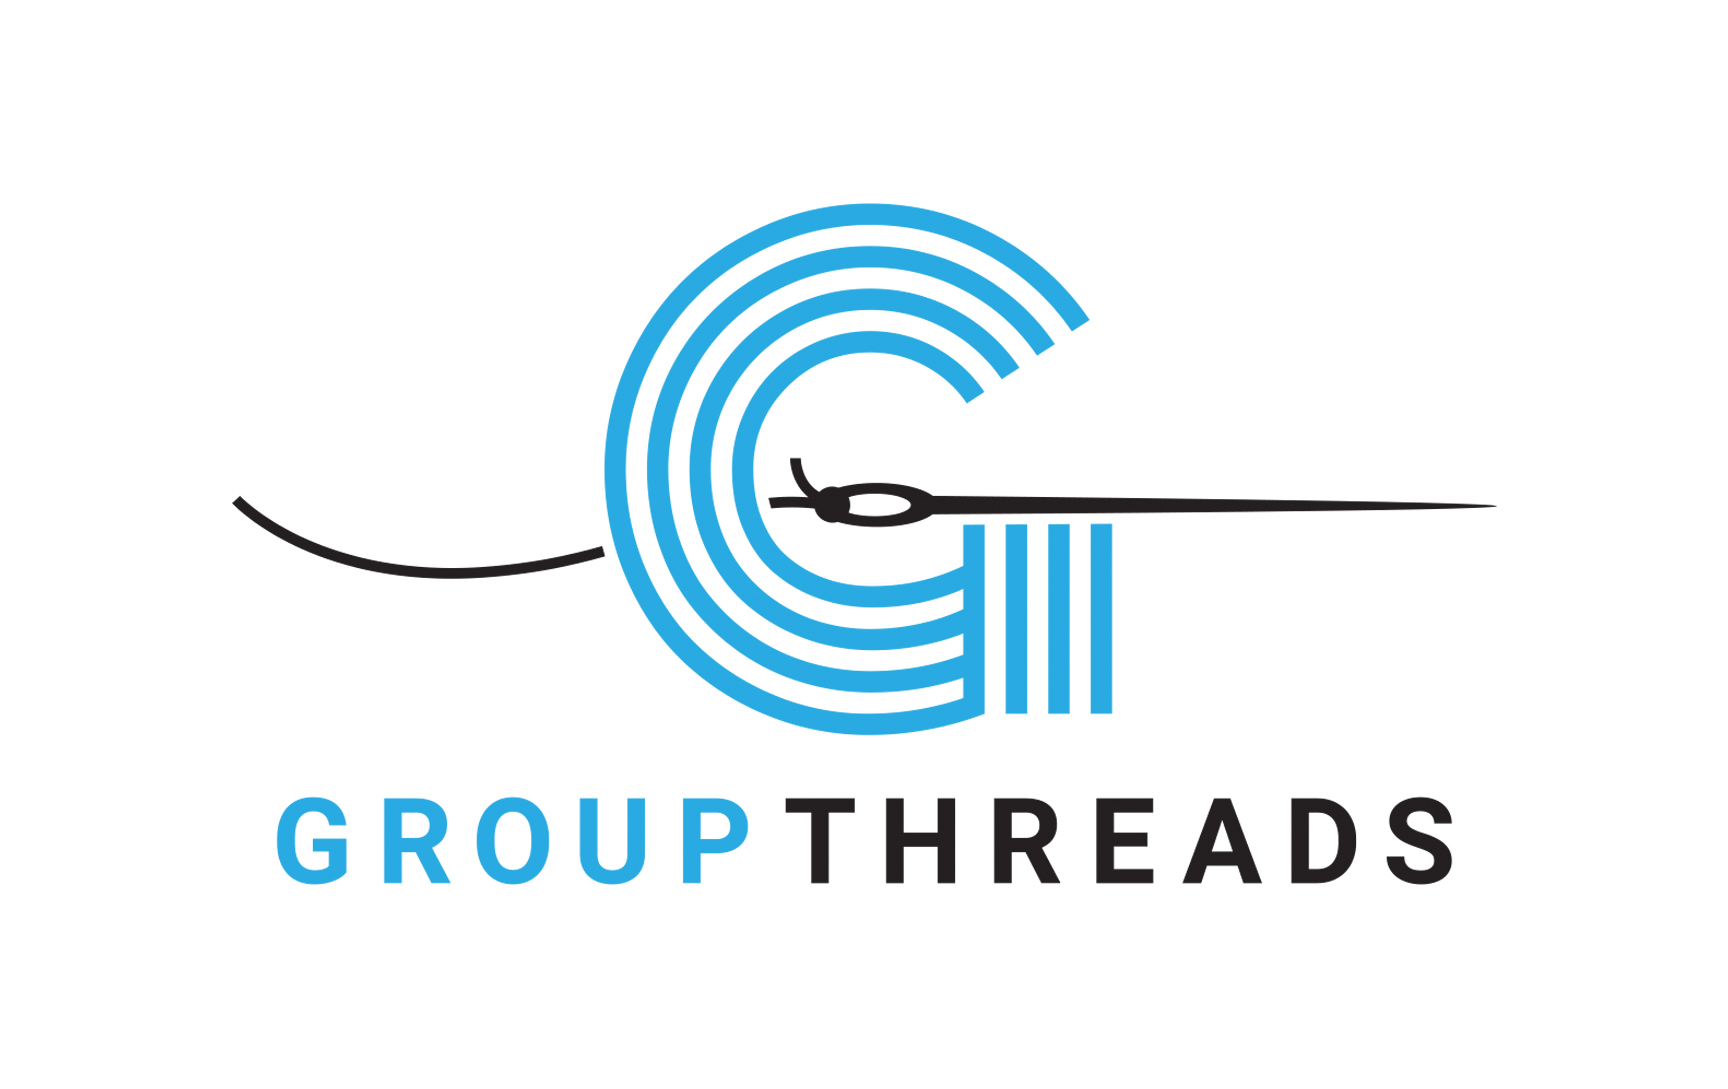 3GroupThreads